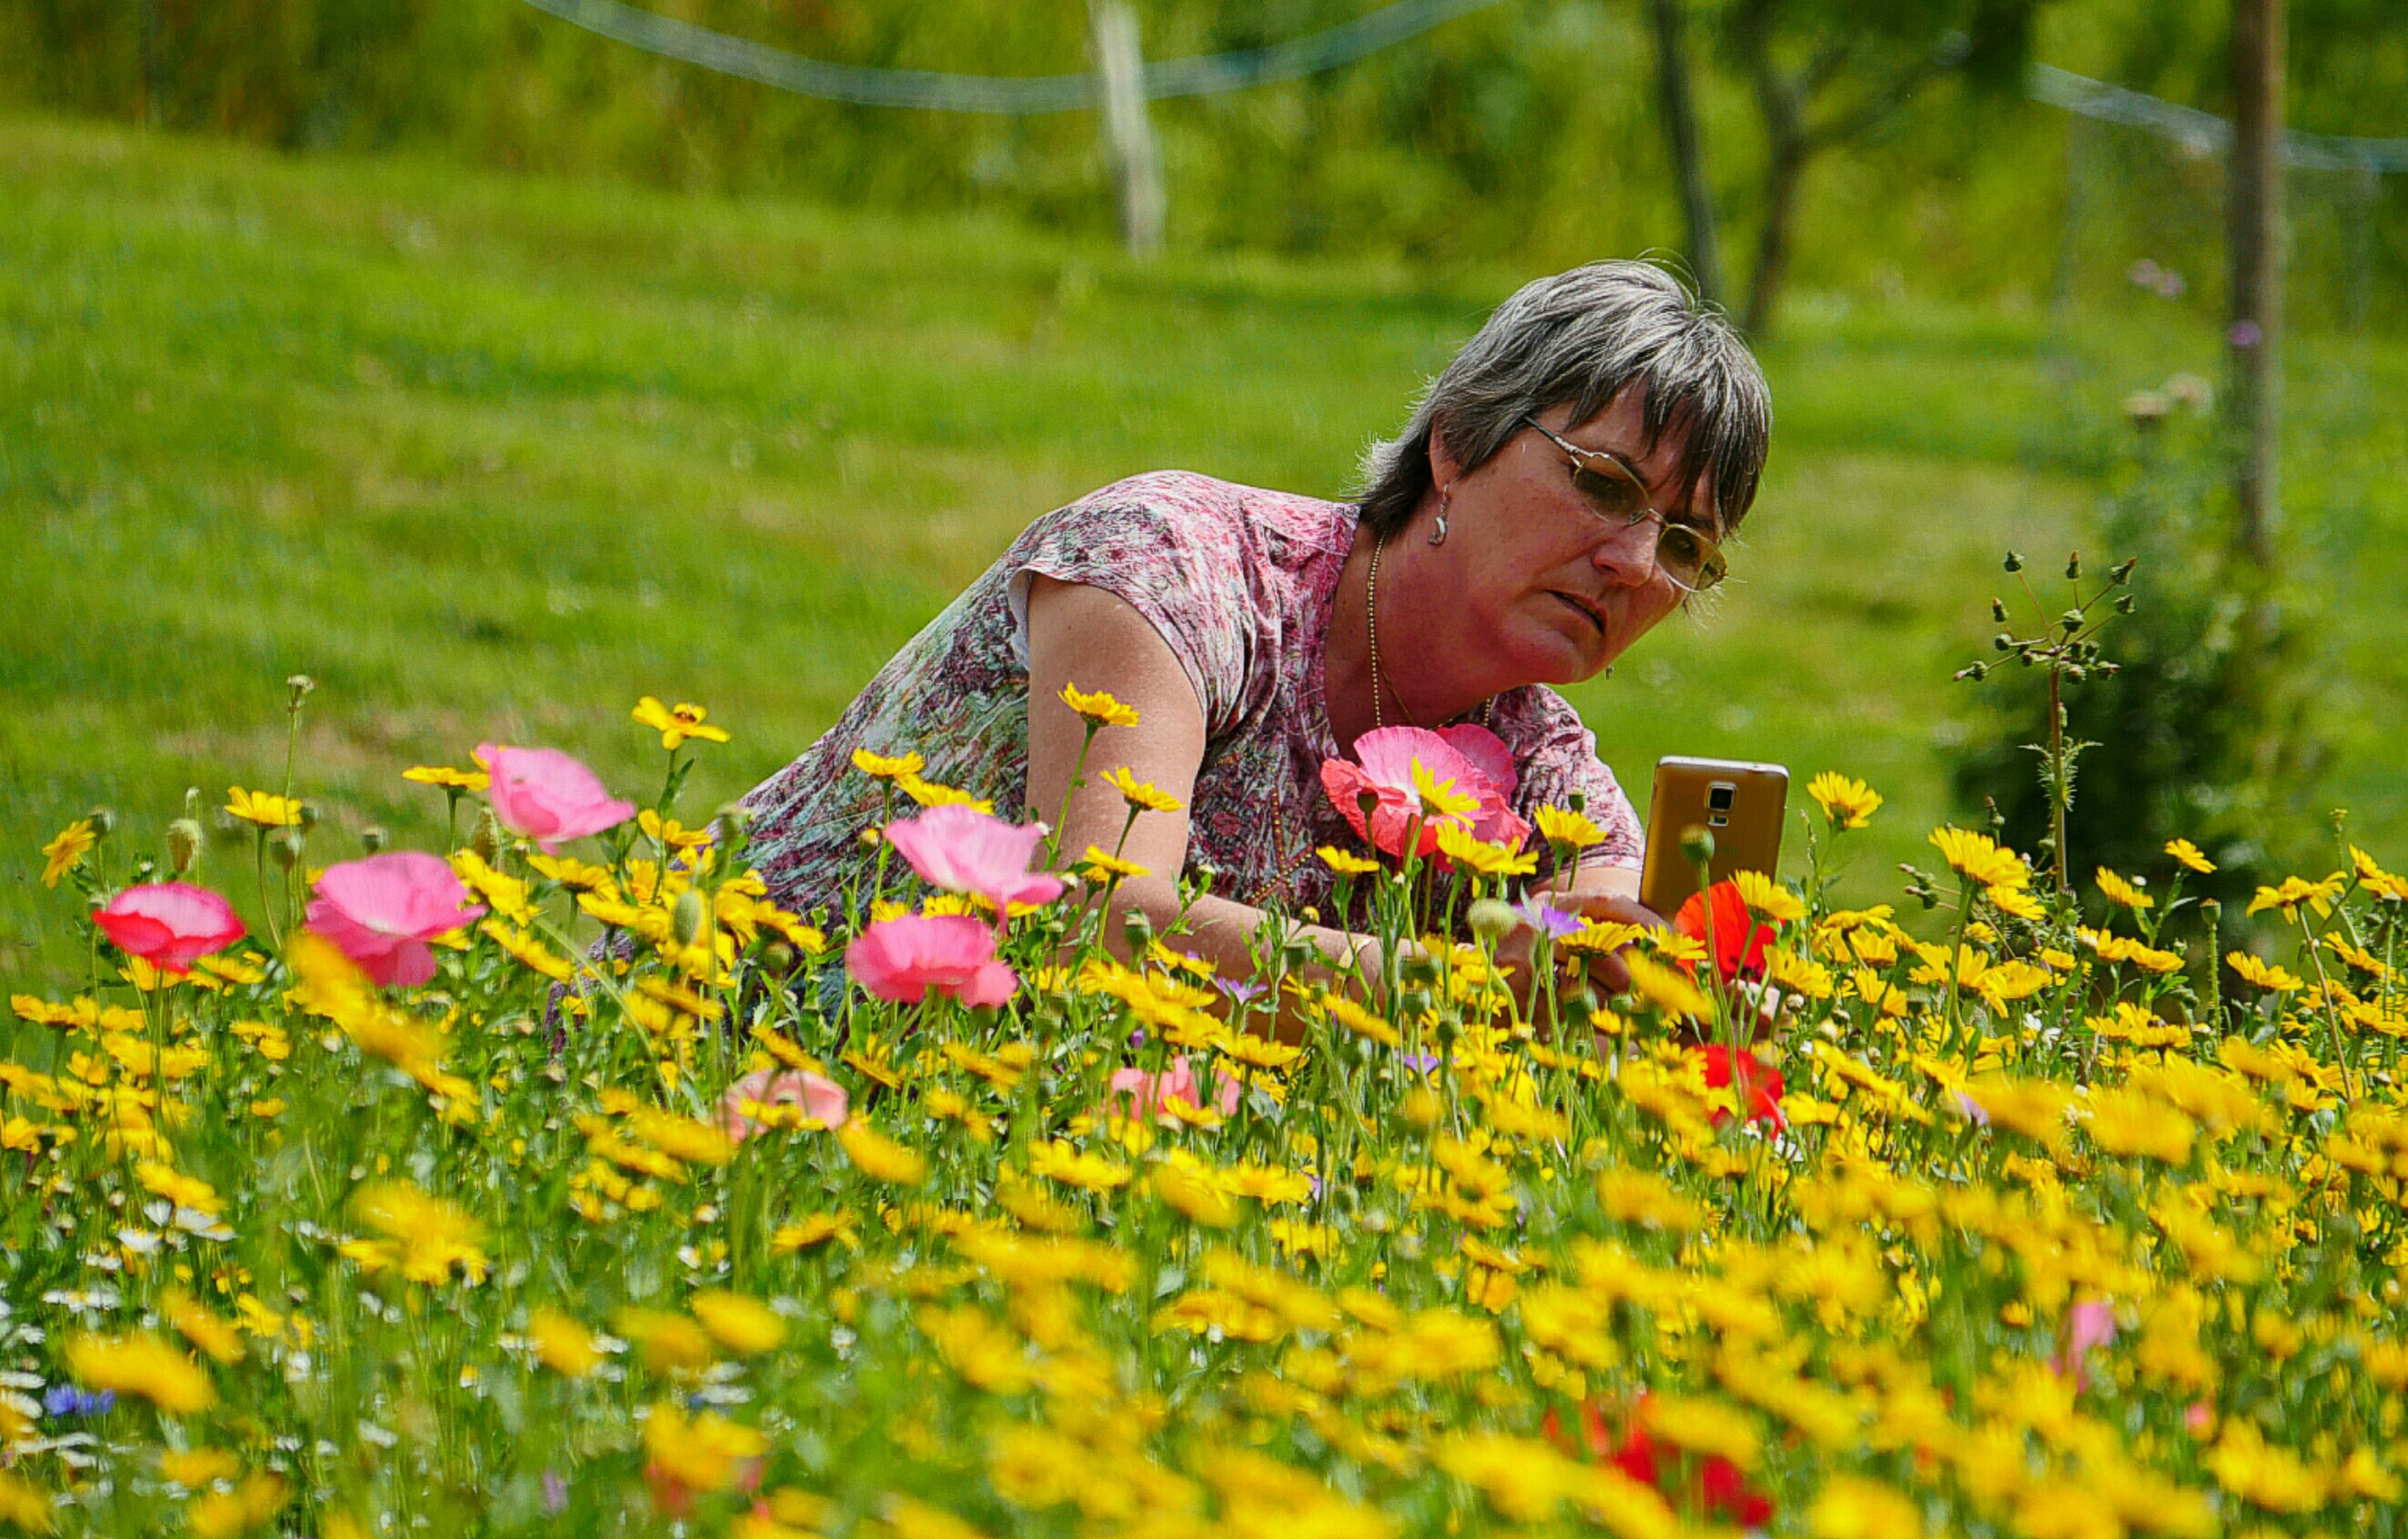 EyeEm Selects Flower Meadow Sunny Say One Woman Only Flowerbed Beauty In Nature Nature Photographer Yellow Flowers Colourful